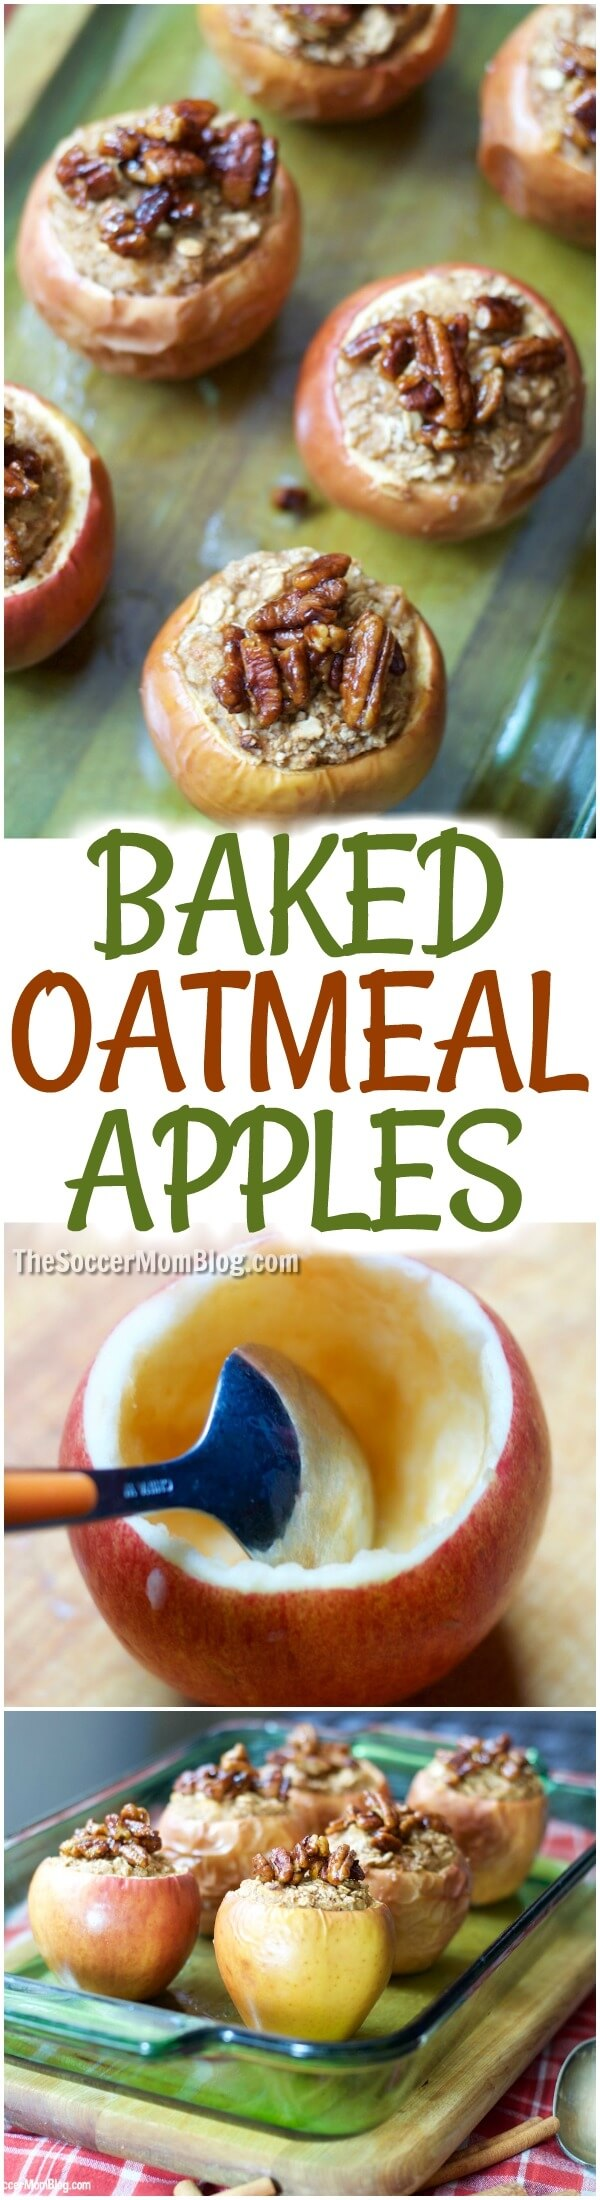 The perfect fall breakfast - Baked Oatmeal Stuffed Apples are kid-approved and easy to make ahead for the week!